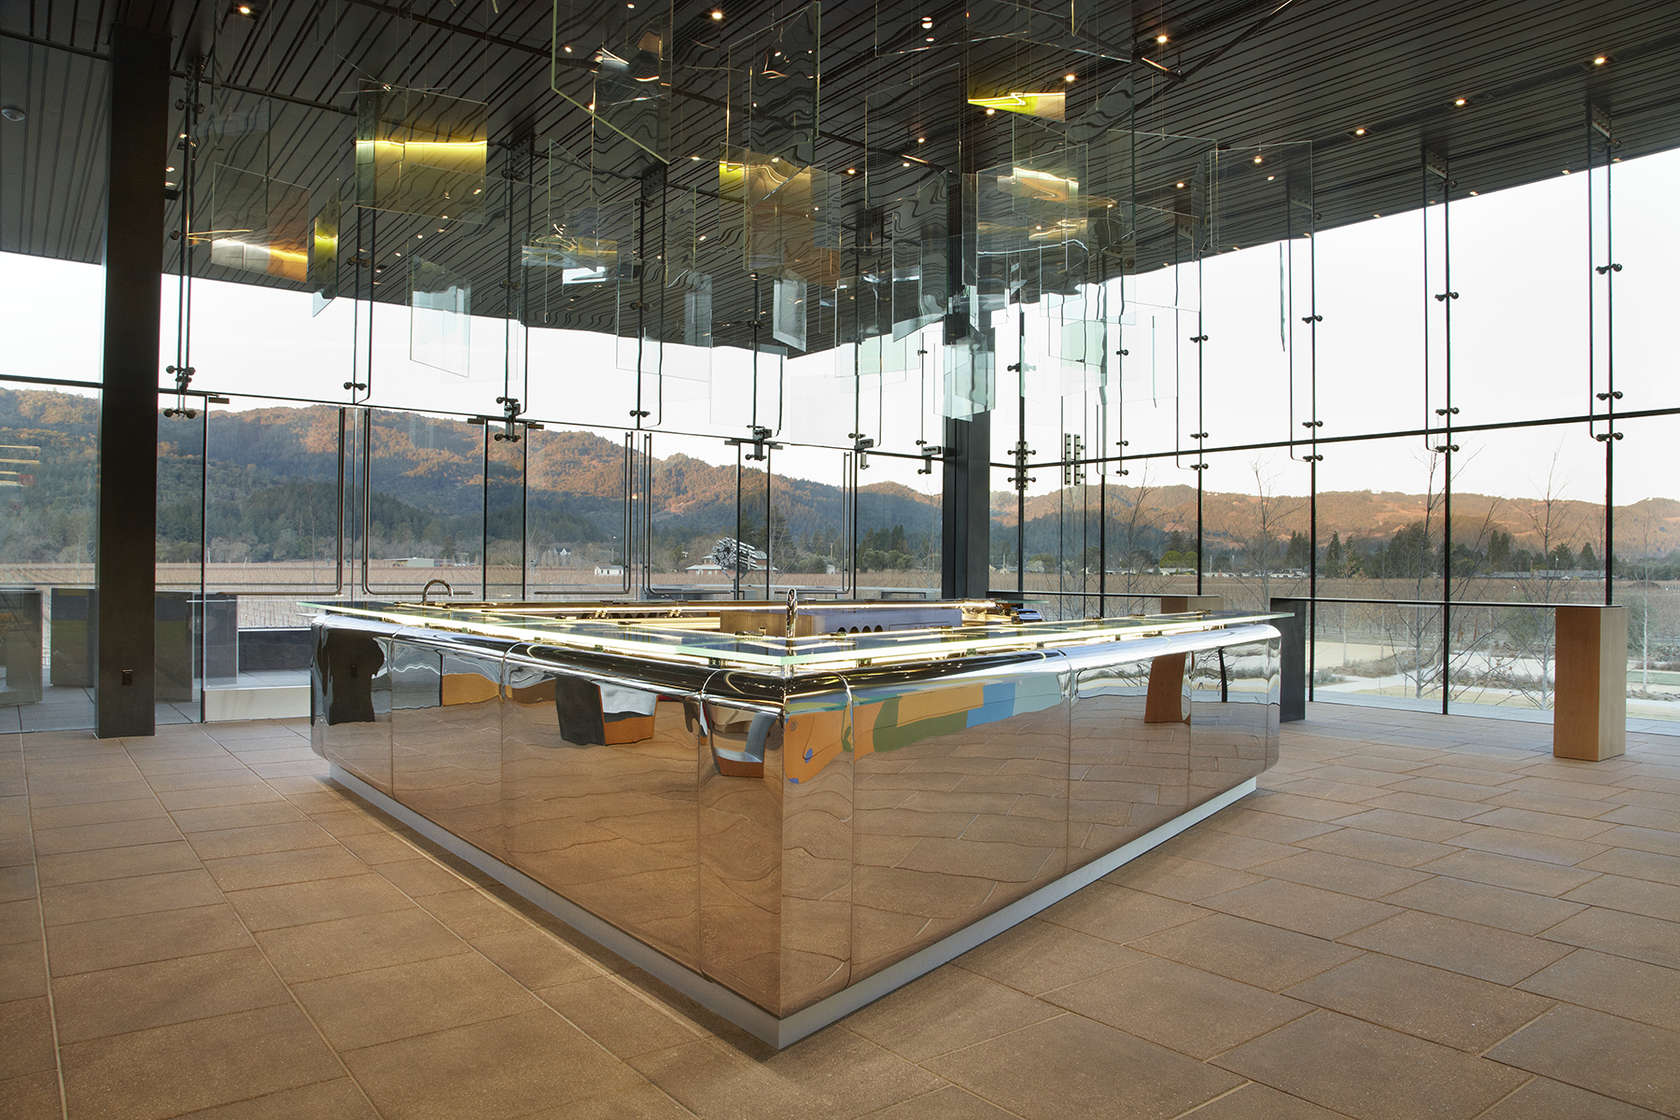 Hall Winery approached NICOLEHOLLIS for the interior design of its new St. Helena winery complex. A highlight is the custom 23-foot mirror-polish bar.